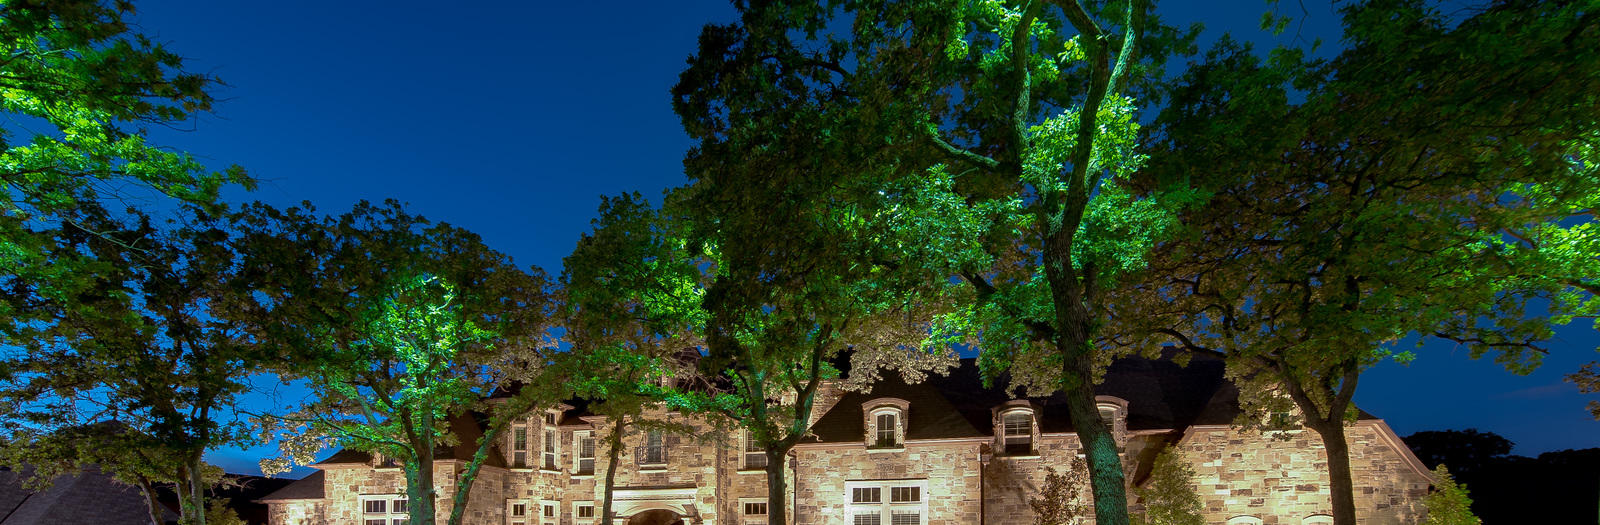 French Country Landscape with green tint landscape lighting